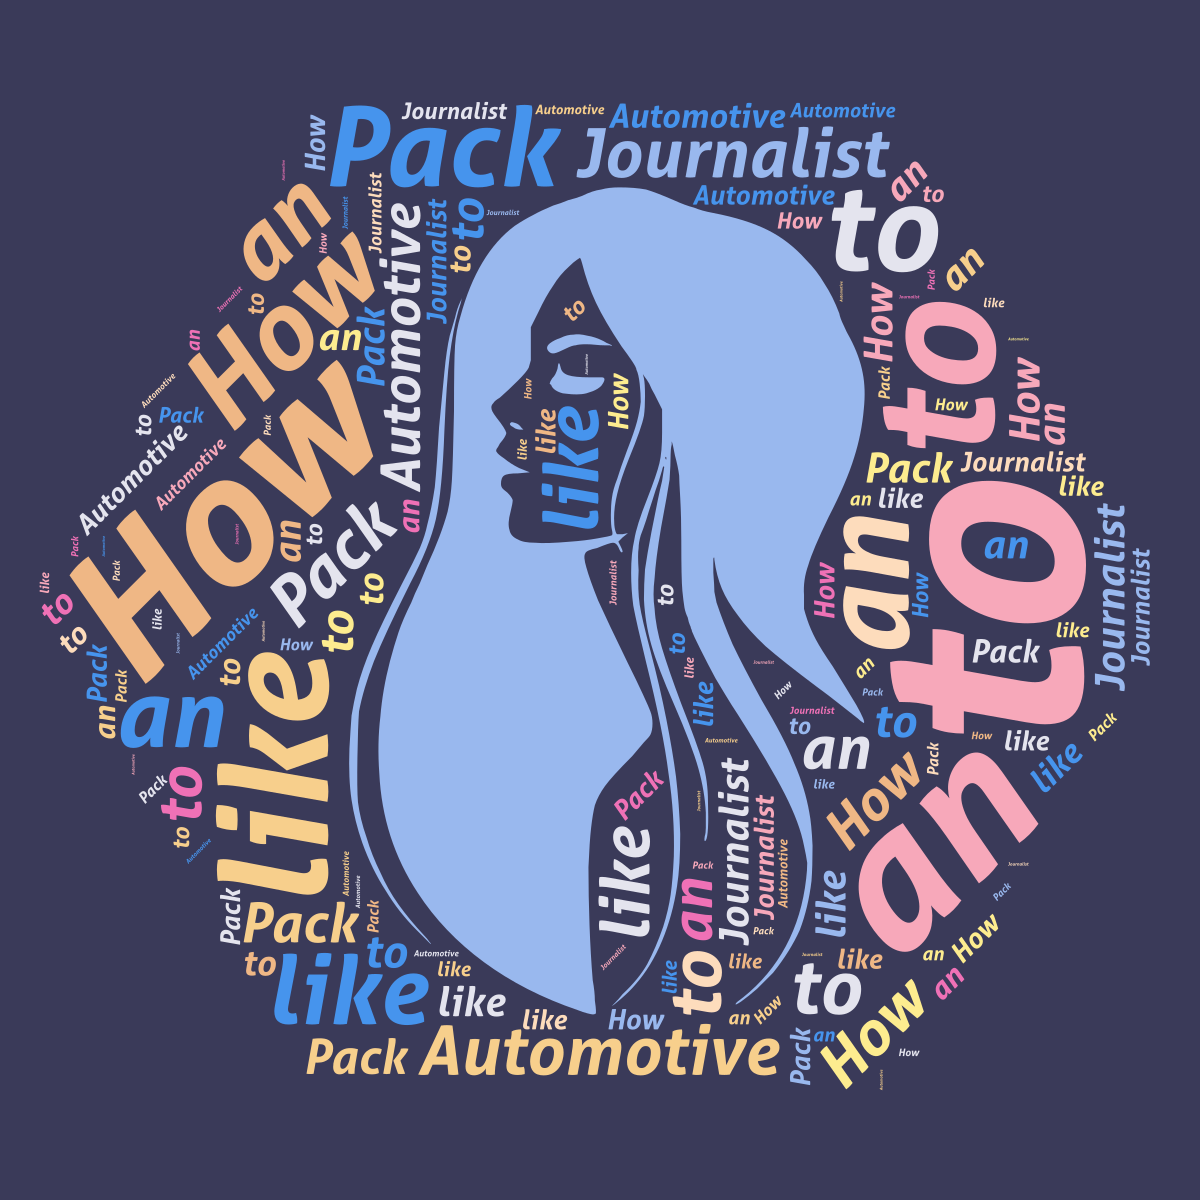 How to Pack like an Automotive Journalist